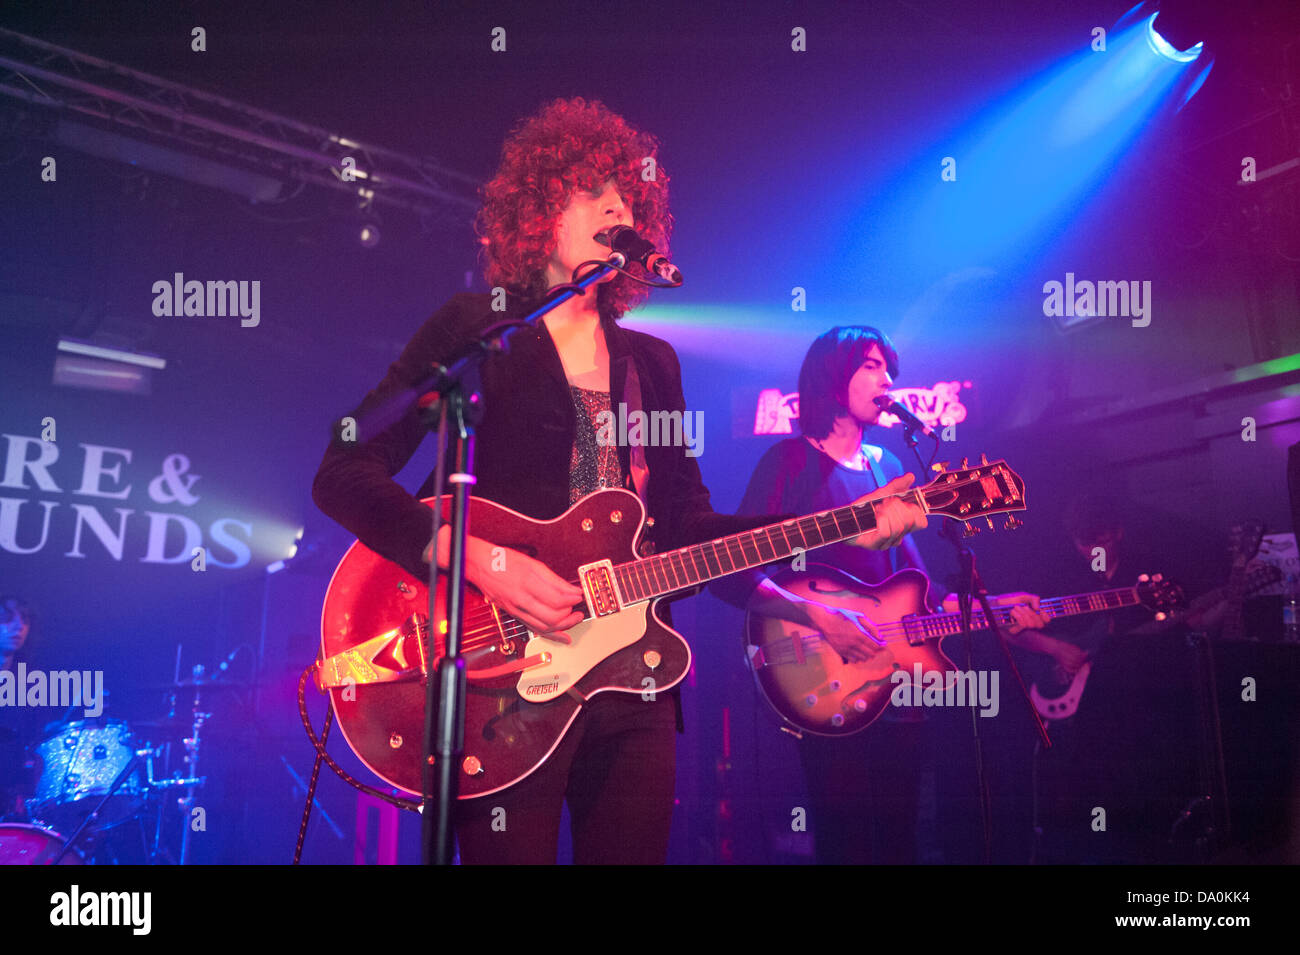 Psychedelic rock band Temples at the Hare and Hounds, King's Heath, Birmingham, 19 June 2013. Lead singer James - Stock Image